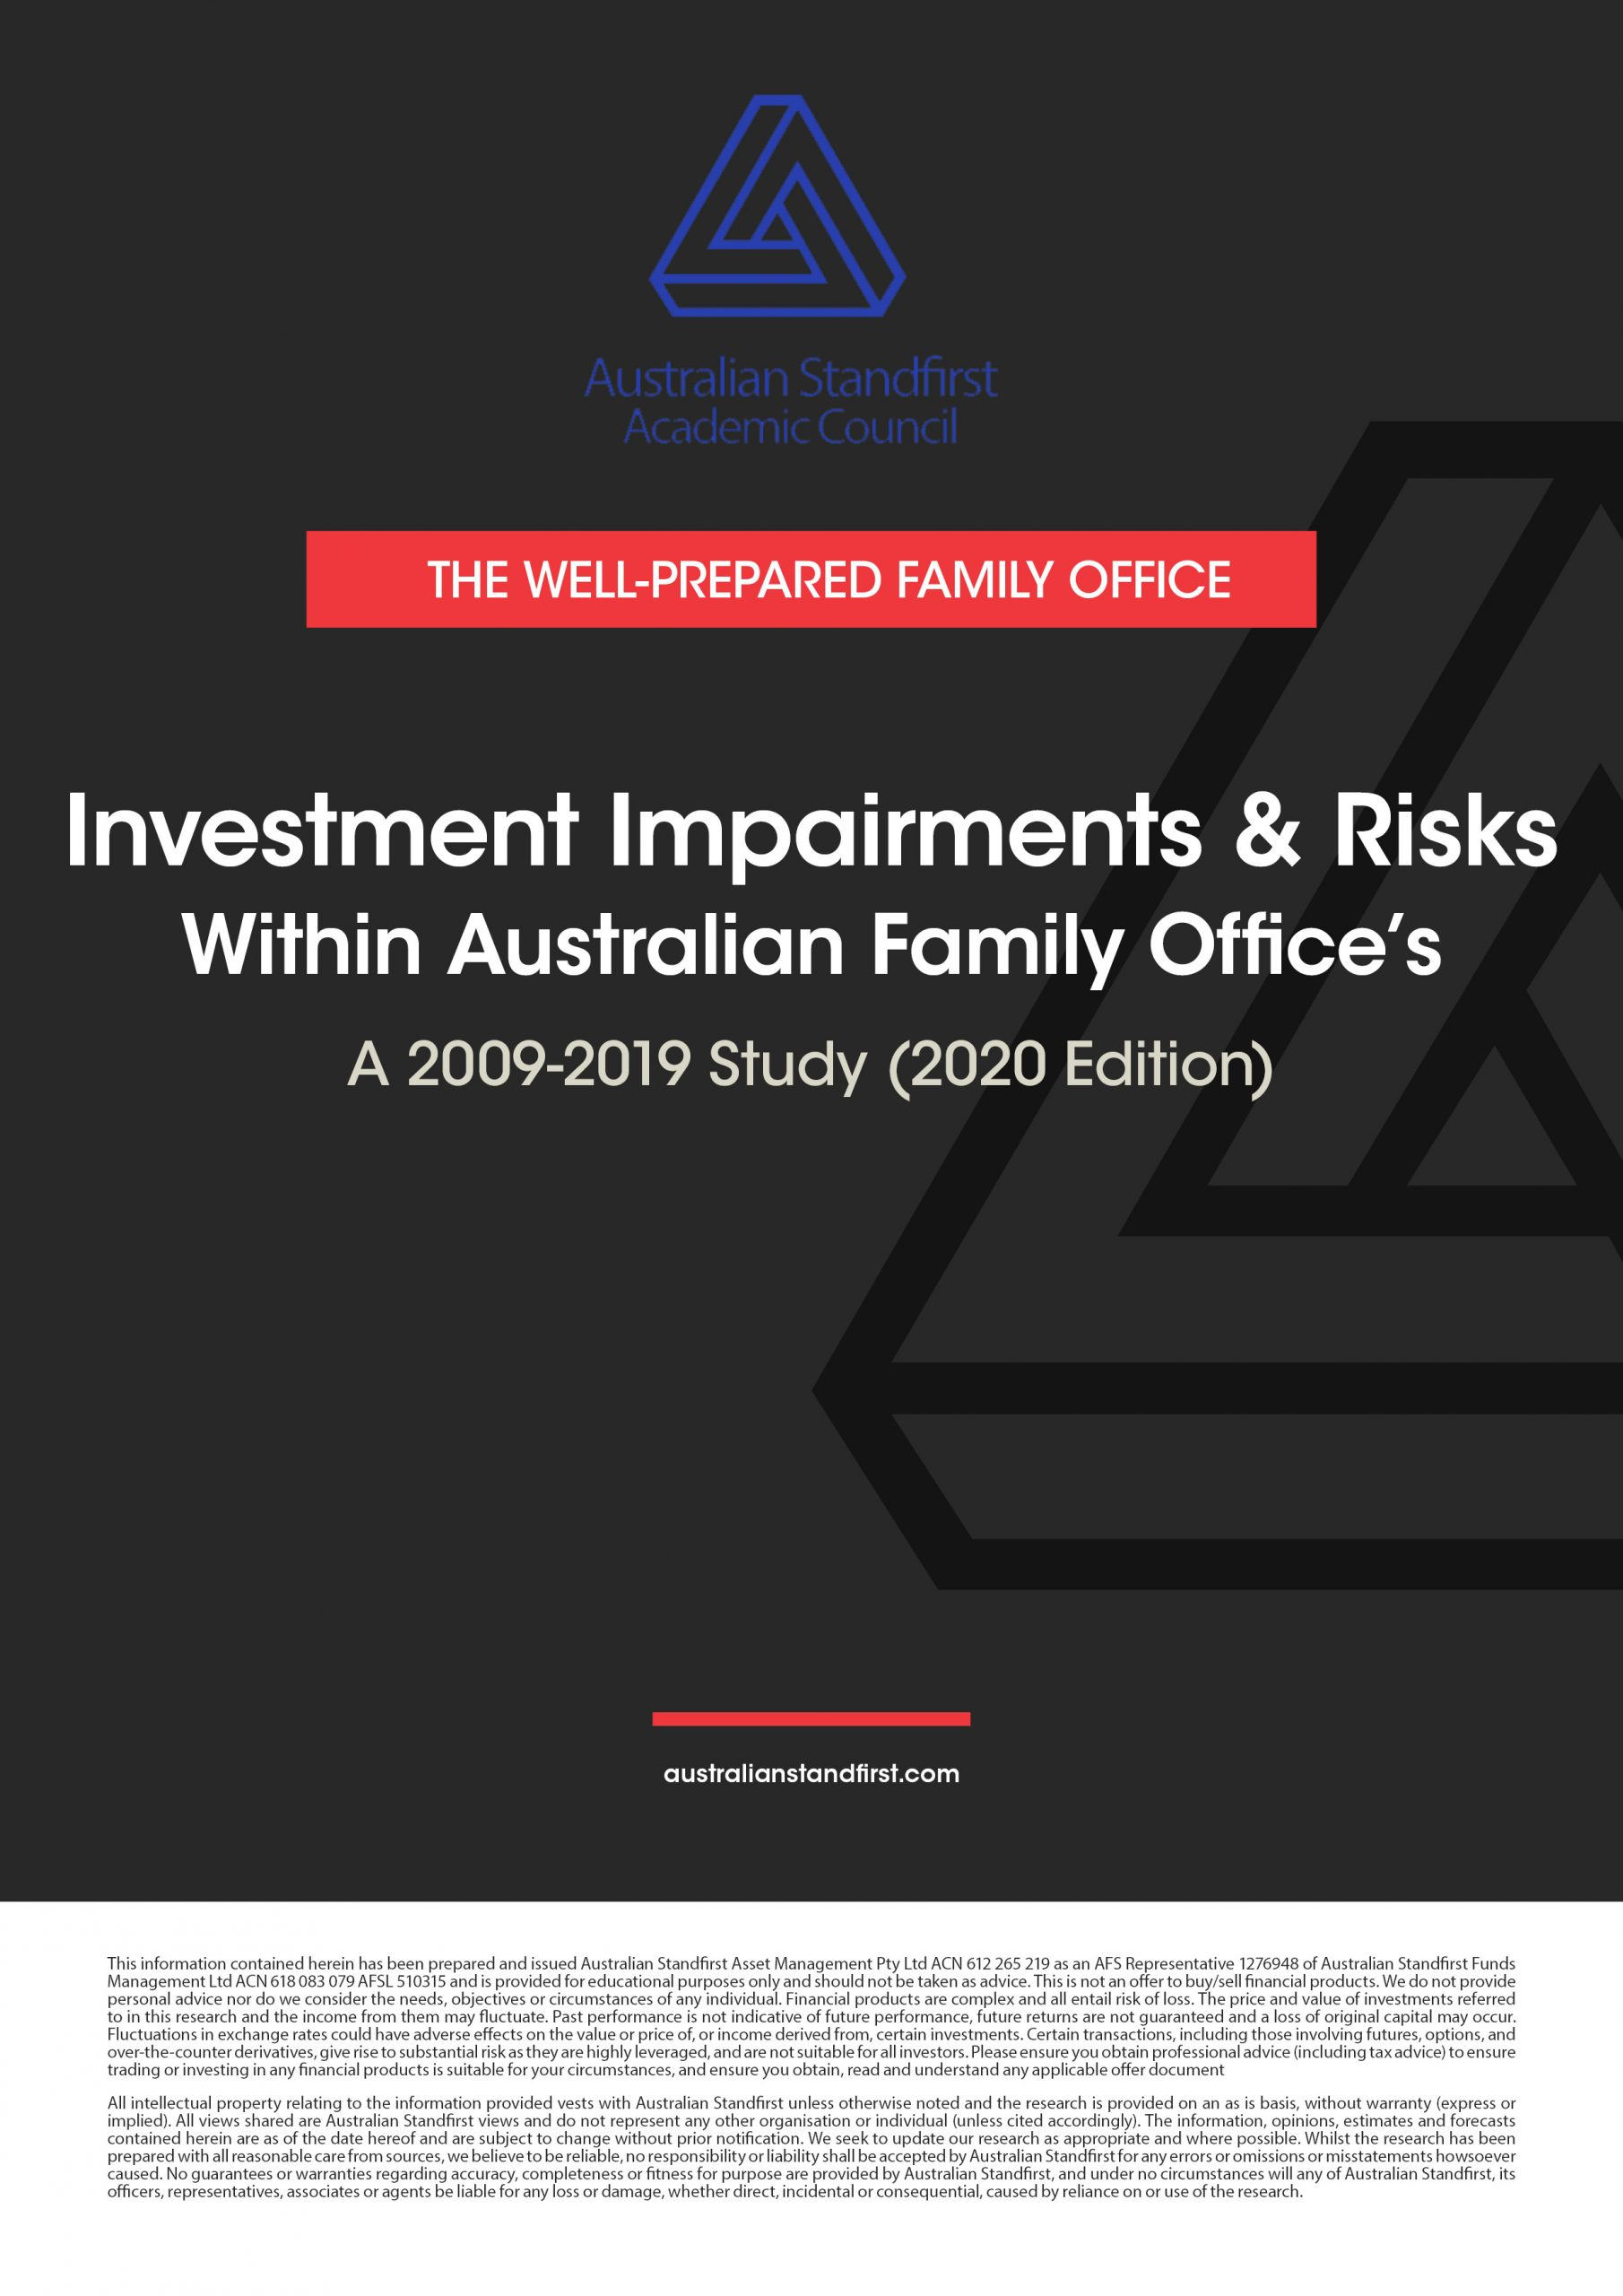 Australian_Standfirst_Investments_Impairments_And_Risks_Survey_2020_Edition